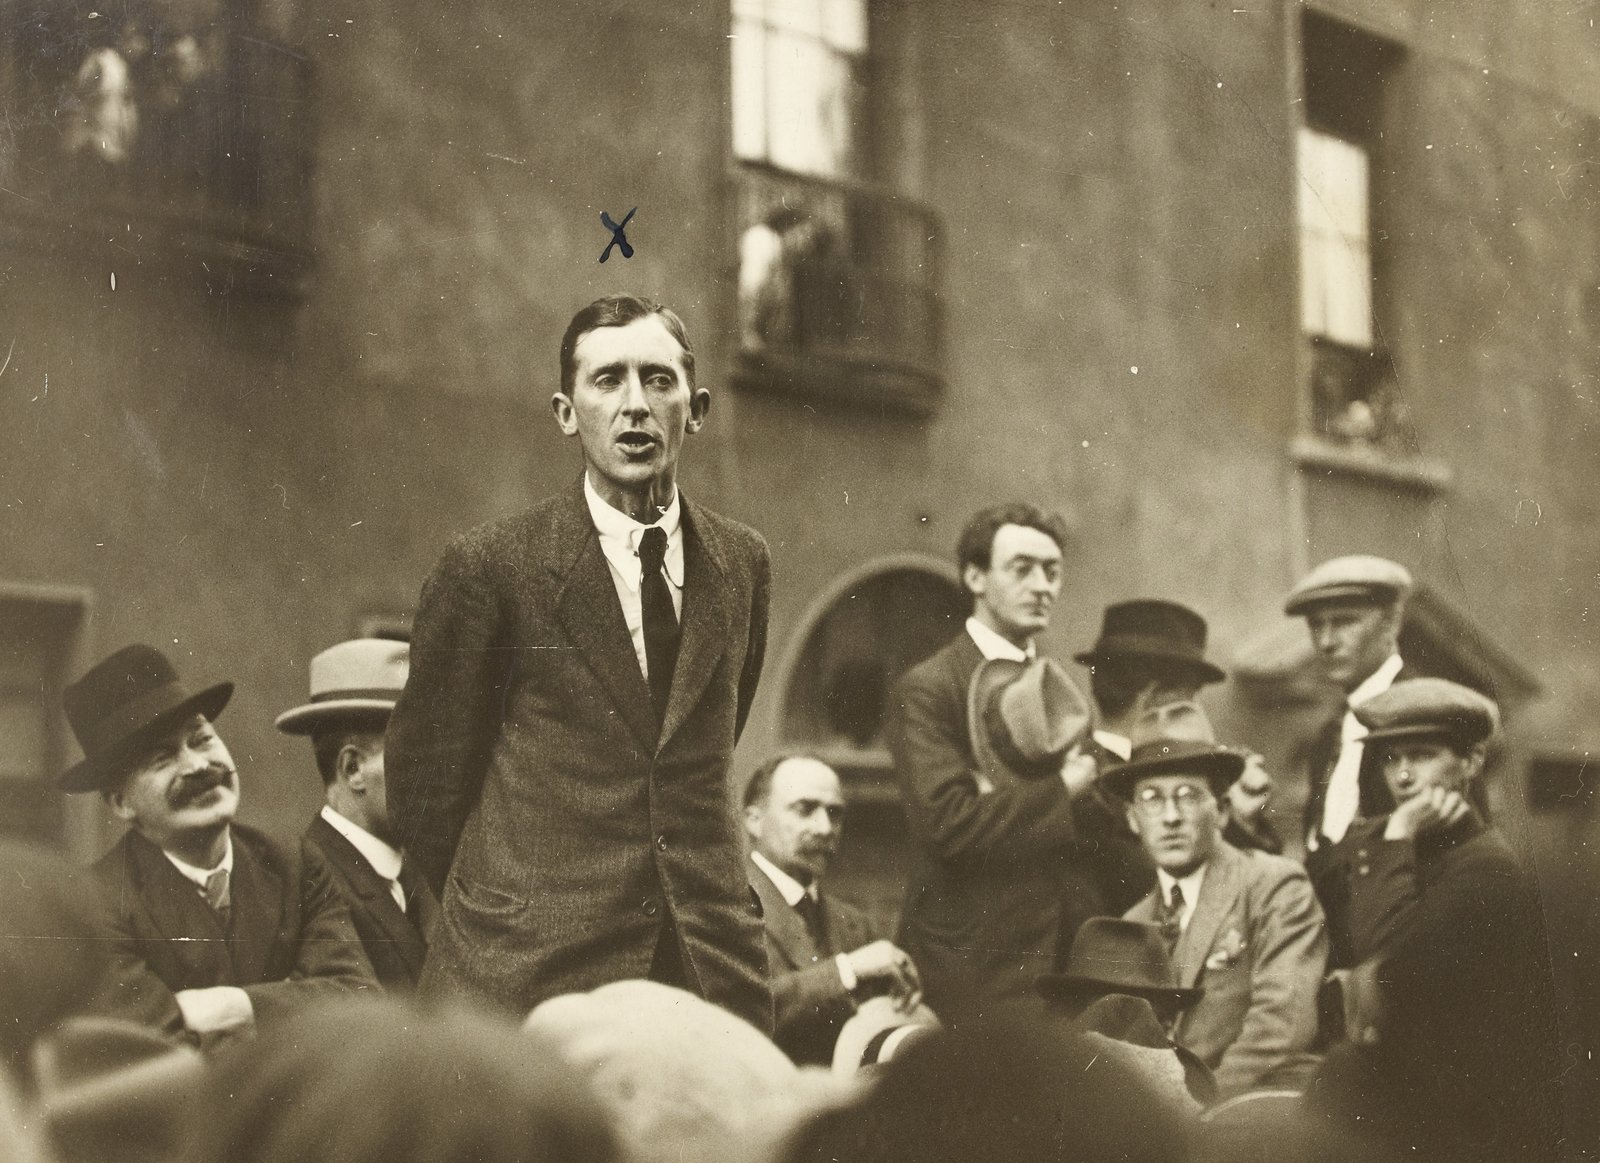 Image - This was deeply resented by the Chief of Staff, Richard Mulcahy. Brugha attempted to dismiss him from office. (Credit: National Library of Ireland)